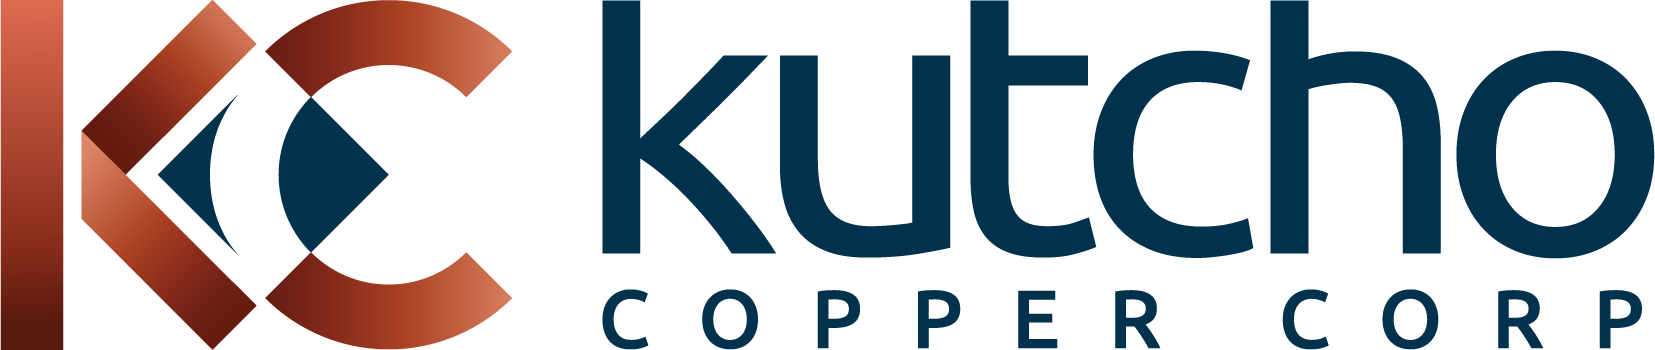 Kutcho Copper Commences Feasibility Study on its High Grade Copper-Zinc Project